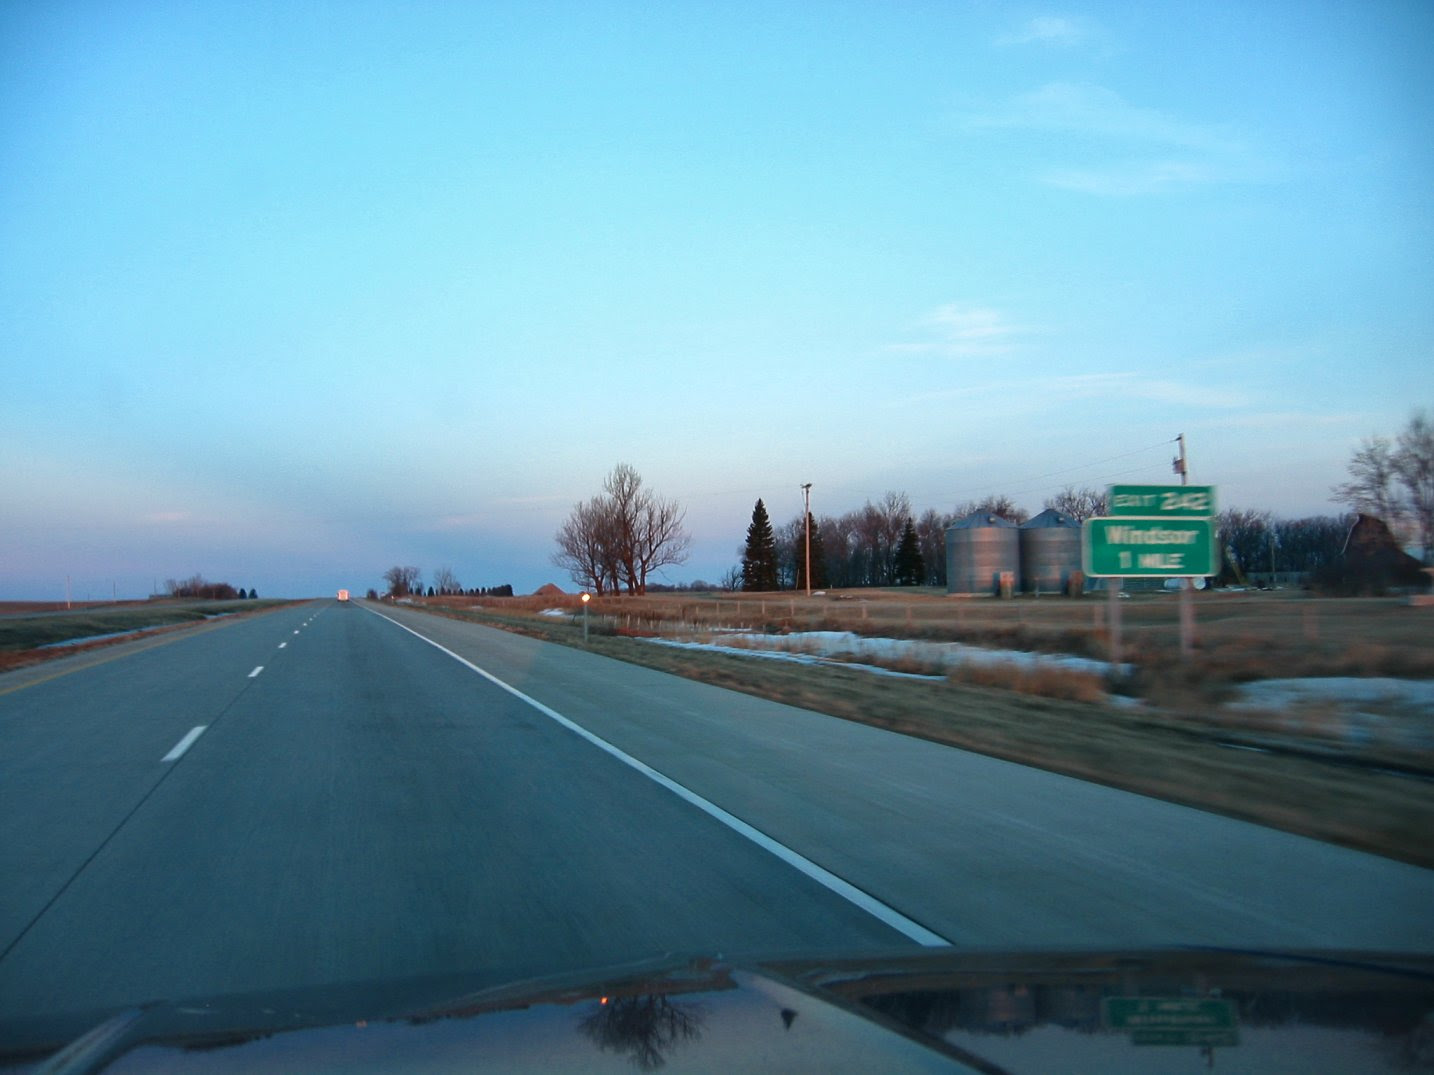 Highway I94 - North Dakota - before the Windsor exit -March 2005 - soul-amp.com